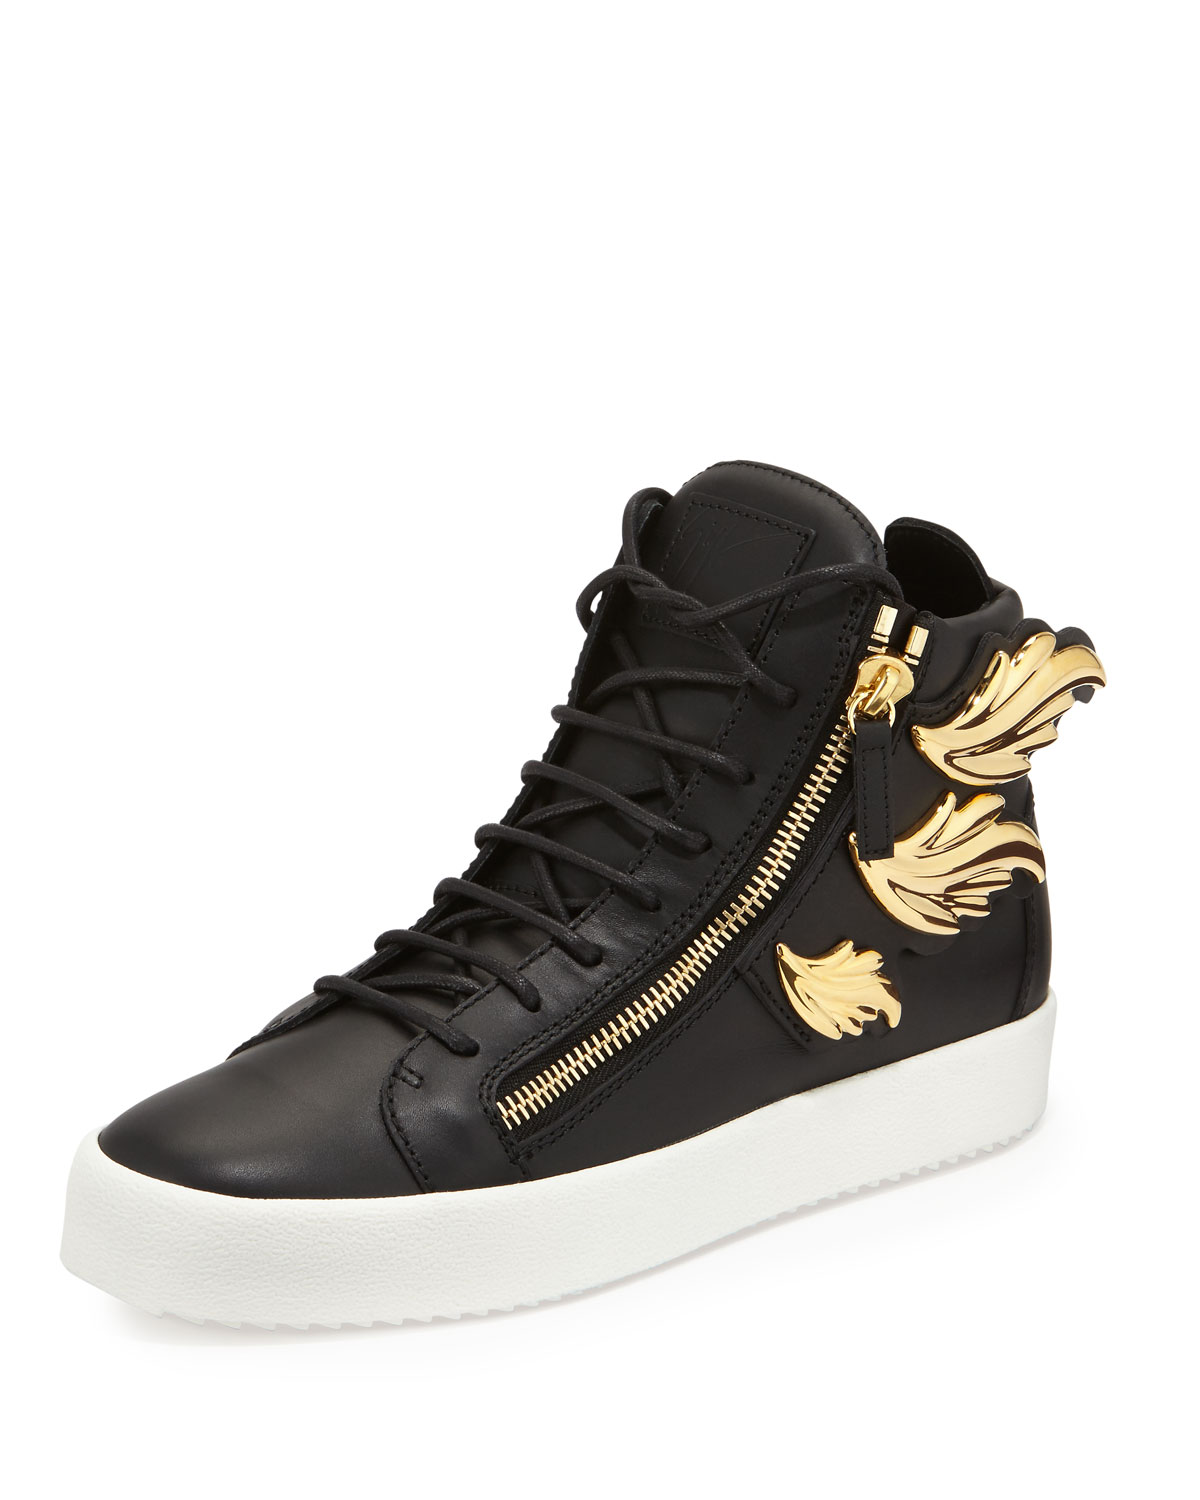 c866ae335ddc Giuseppe Zanotti Men s Leather High-Top Sneaker with Golden Wings ...